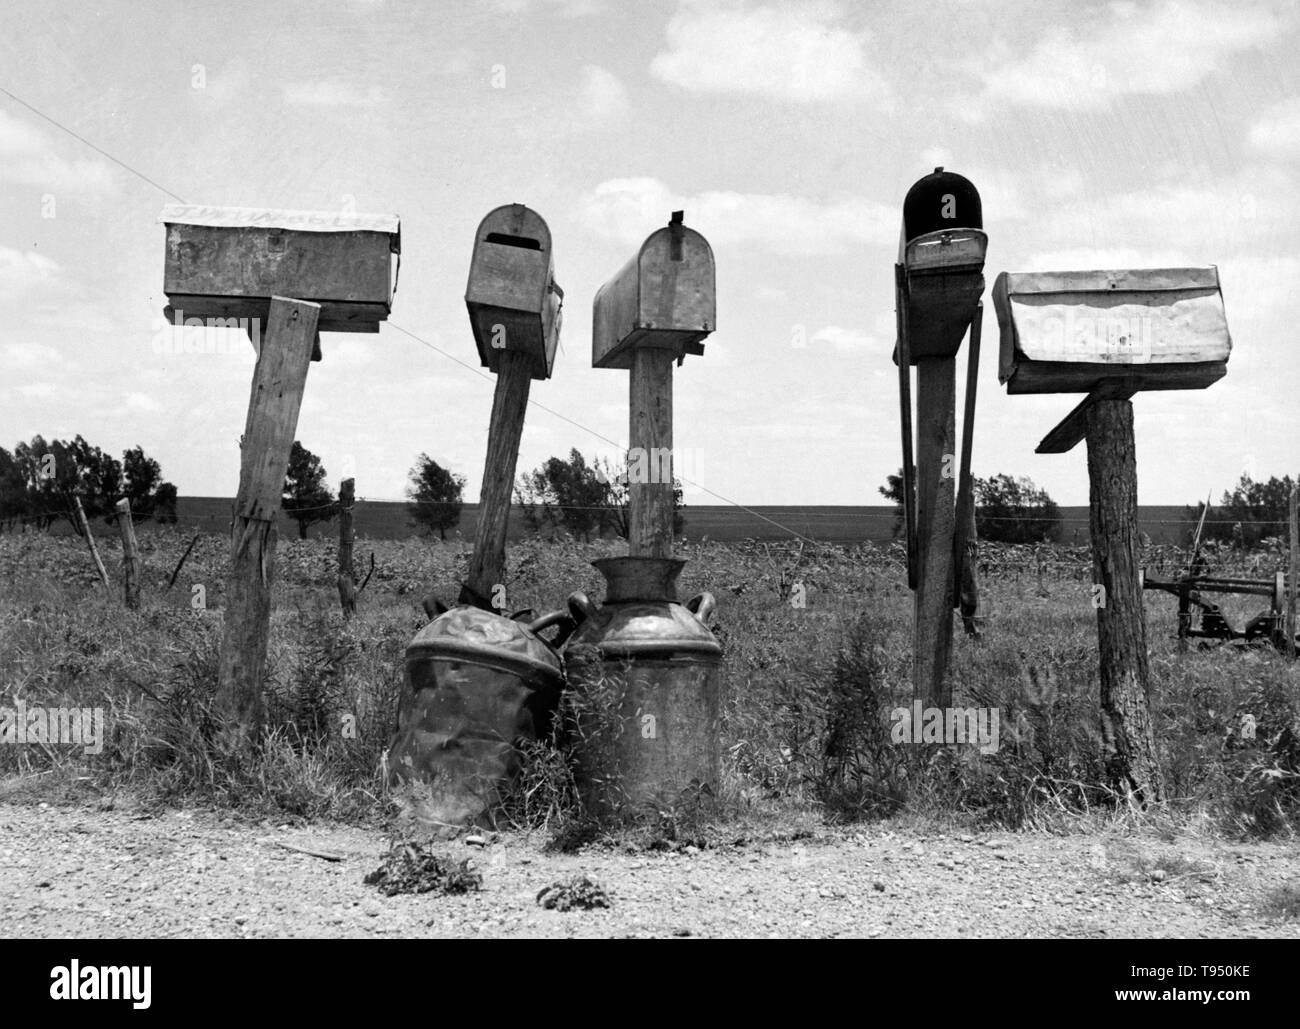 Entitled: 'Mail boxes in Bell County, Texas. Three of these mail boxes are not in use. The tenant farmers have been replaced by tractor farming.' Before the introduction of rural free delivery (RFD) by the Post Office in 1896, many rural residents had no access to the mail unless they collected it at a post office located many miles from their homes or hired a private express company to deliver it. - Stock Image